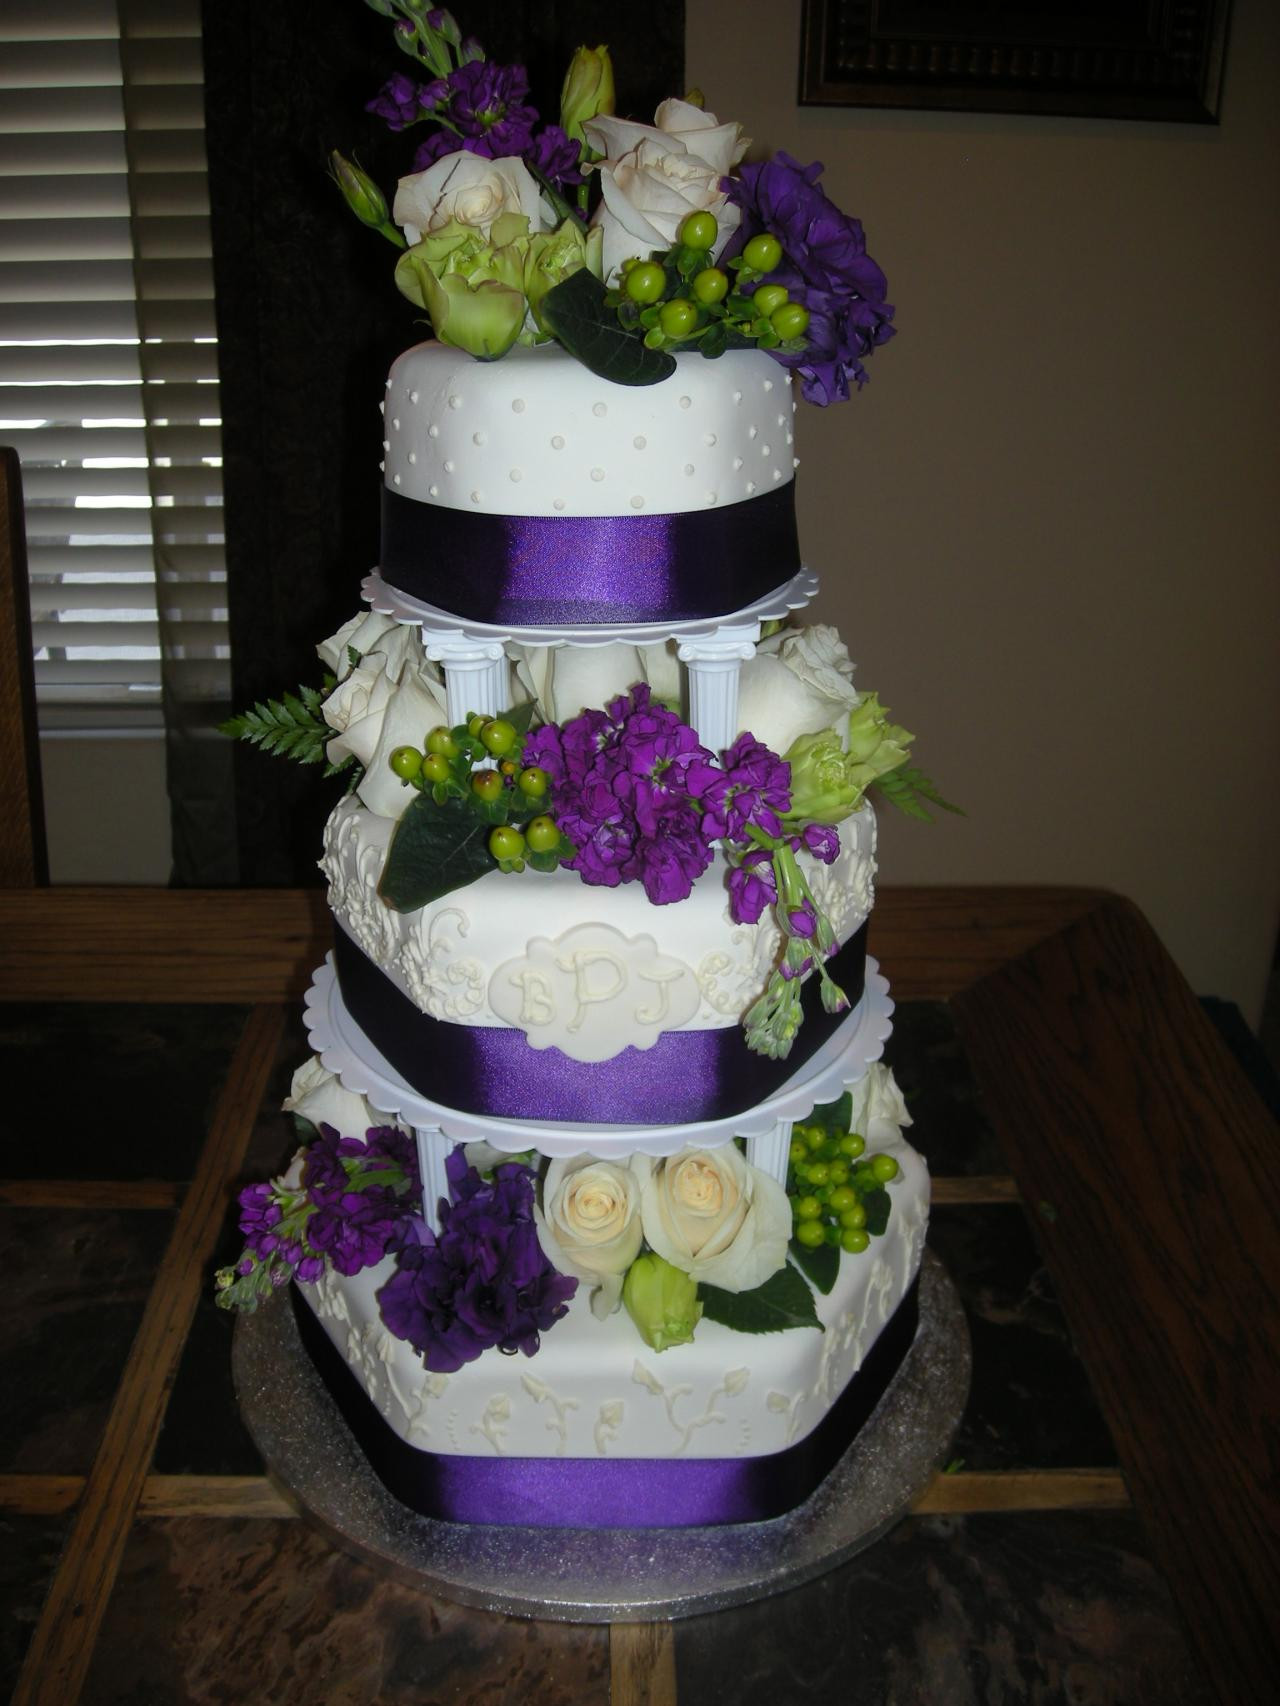 Wedding Cakes Picture Gallery  My Goodness Cakes Wedding Cake Gallery 3